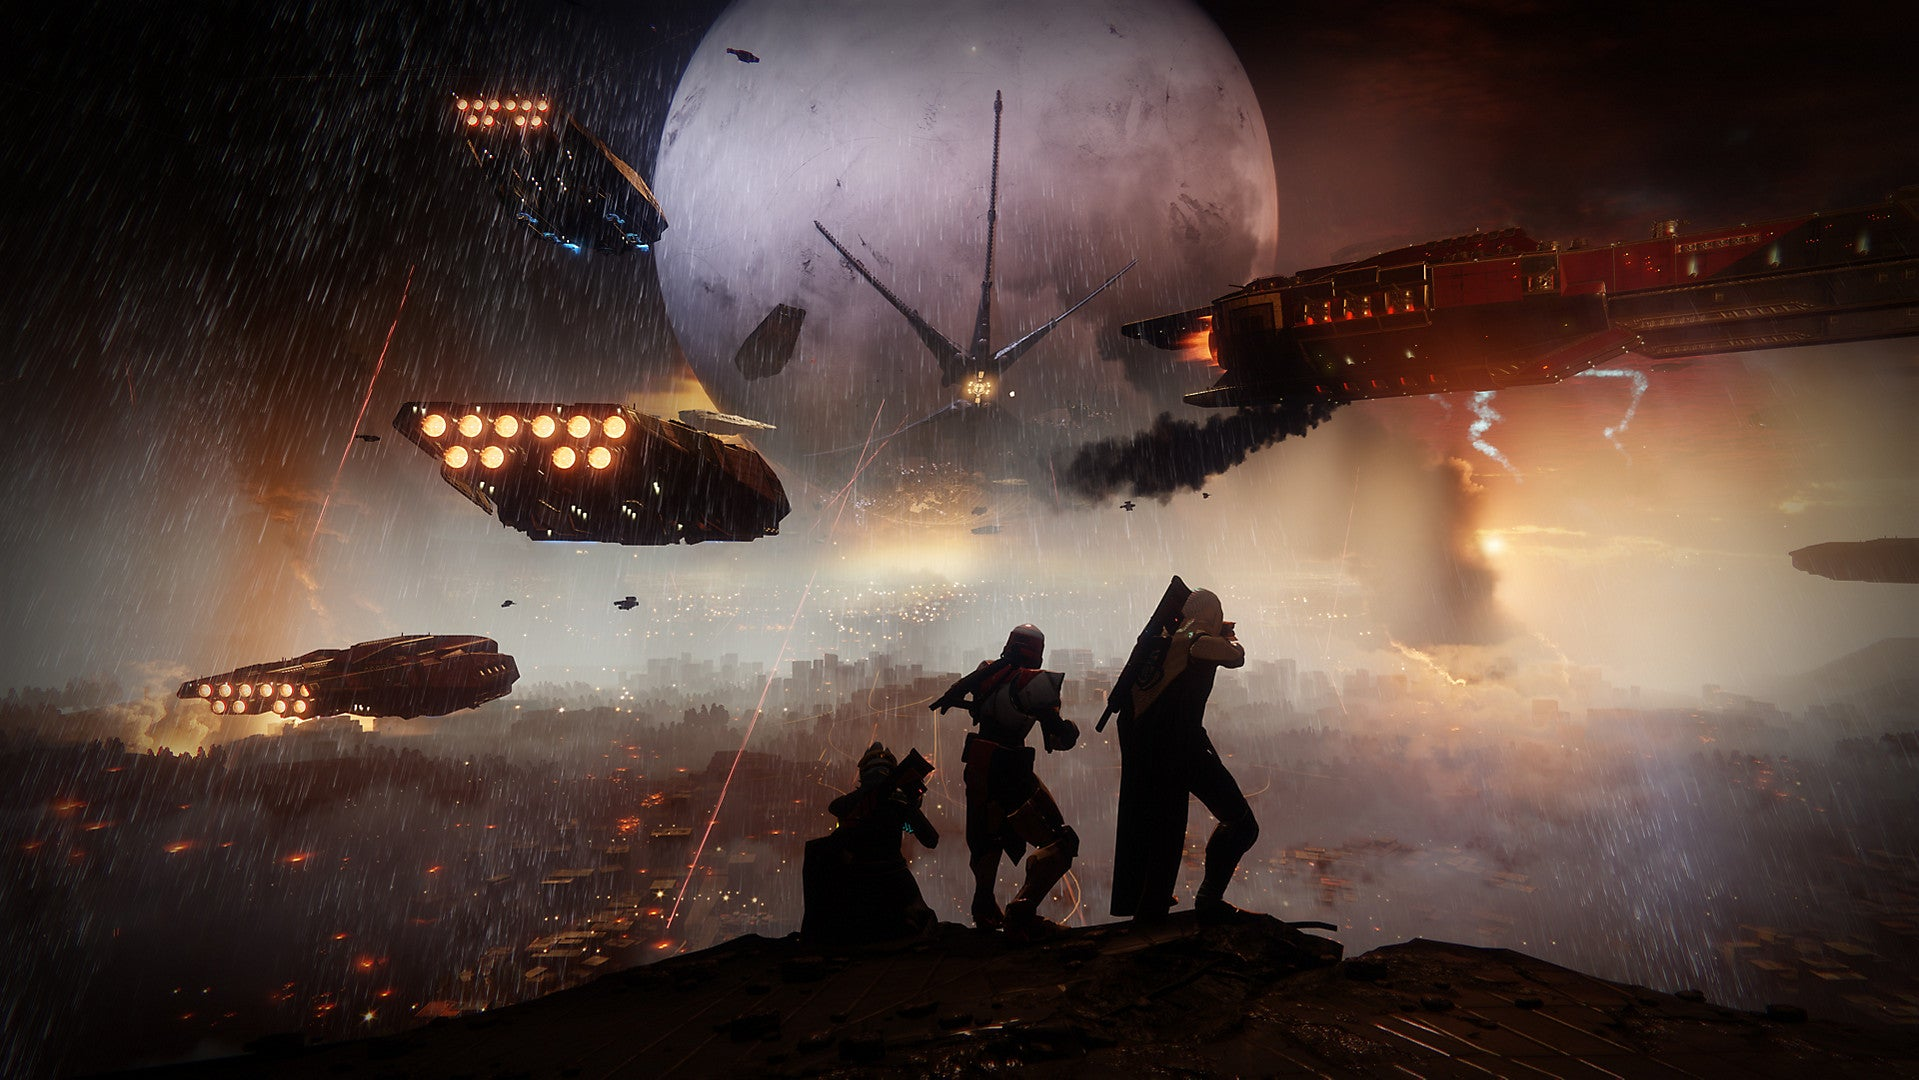 Bungie Outlines The Future Of Destiny 2: Cross-Save, No Exclusives, Free-To-Play Base Game